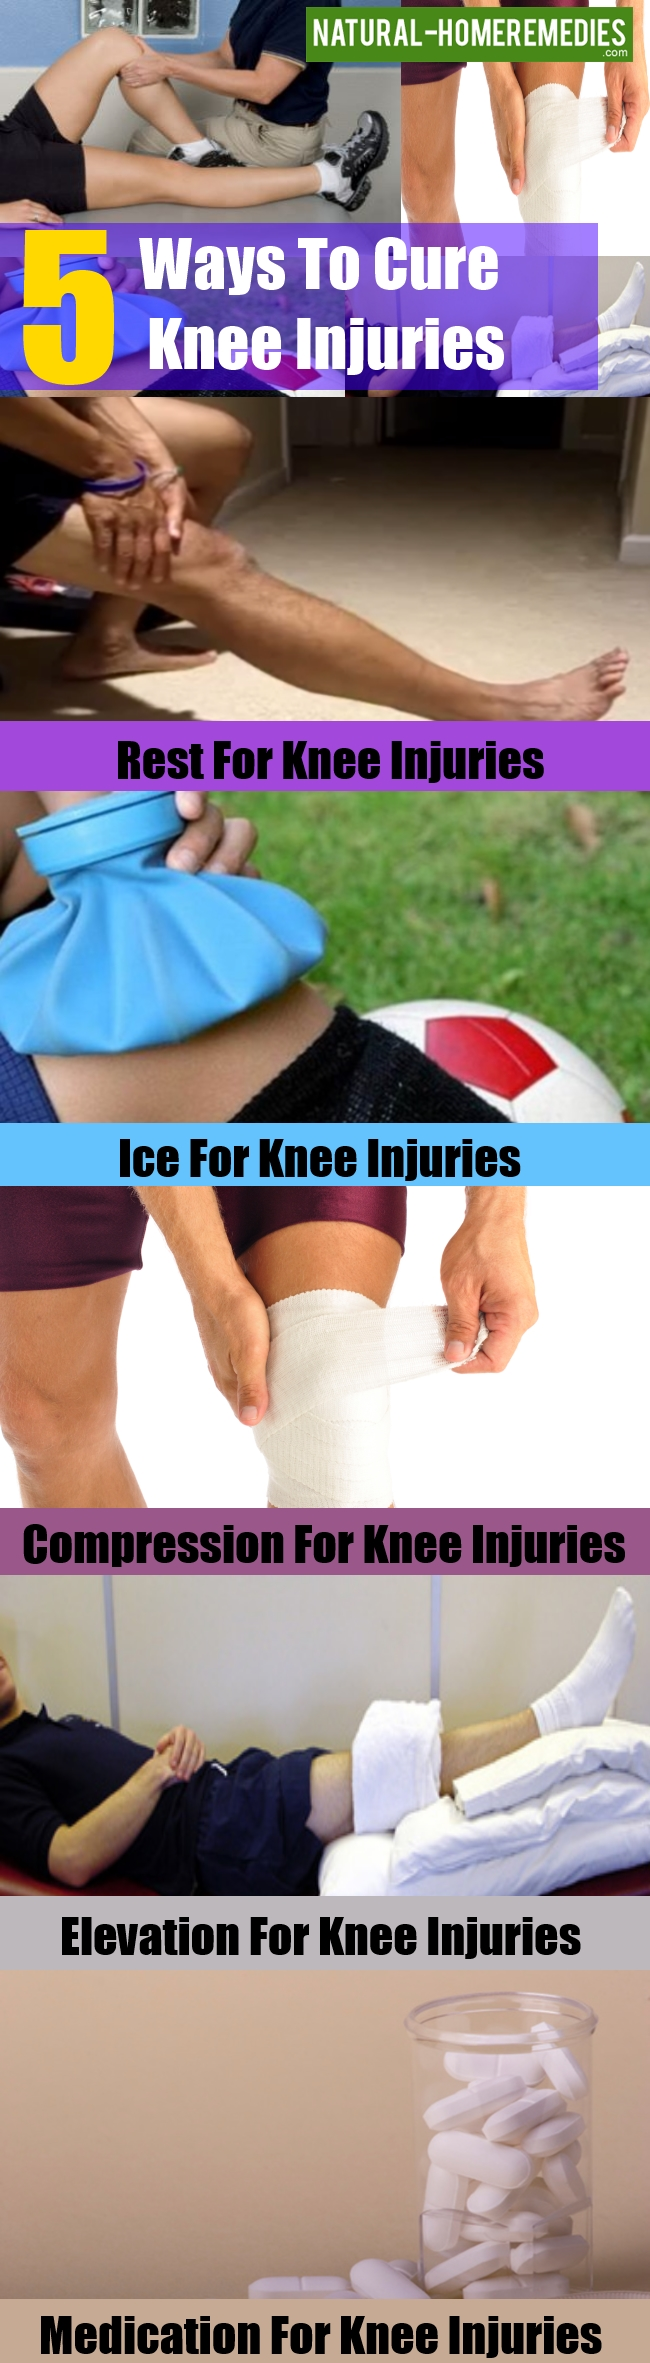 Ways To Cure Common Knee Injuries